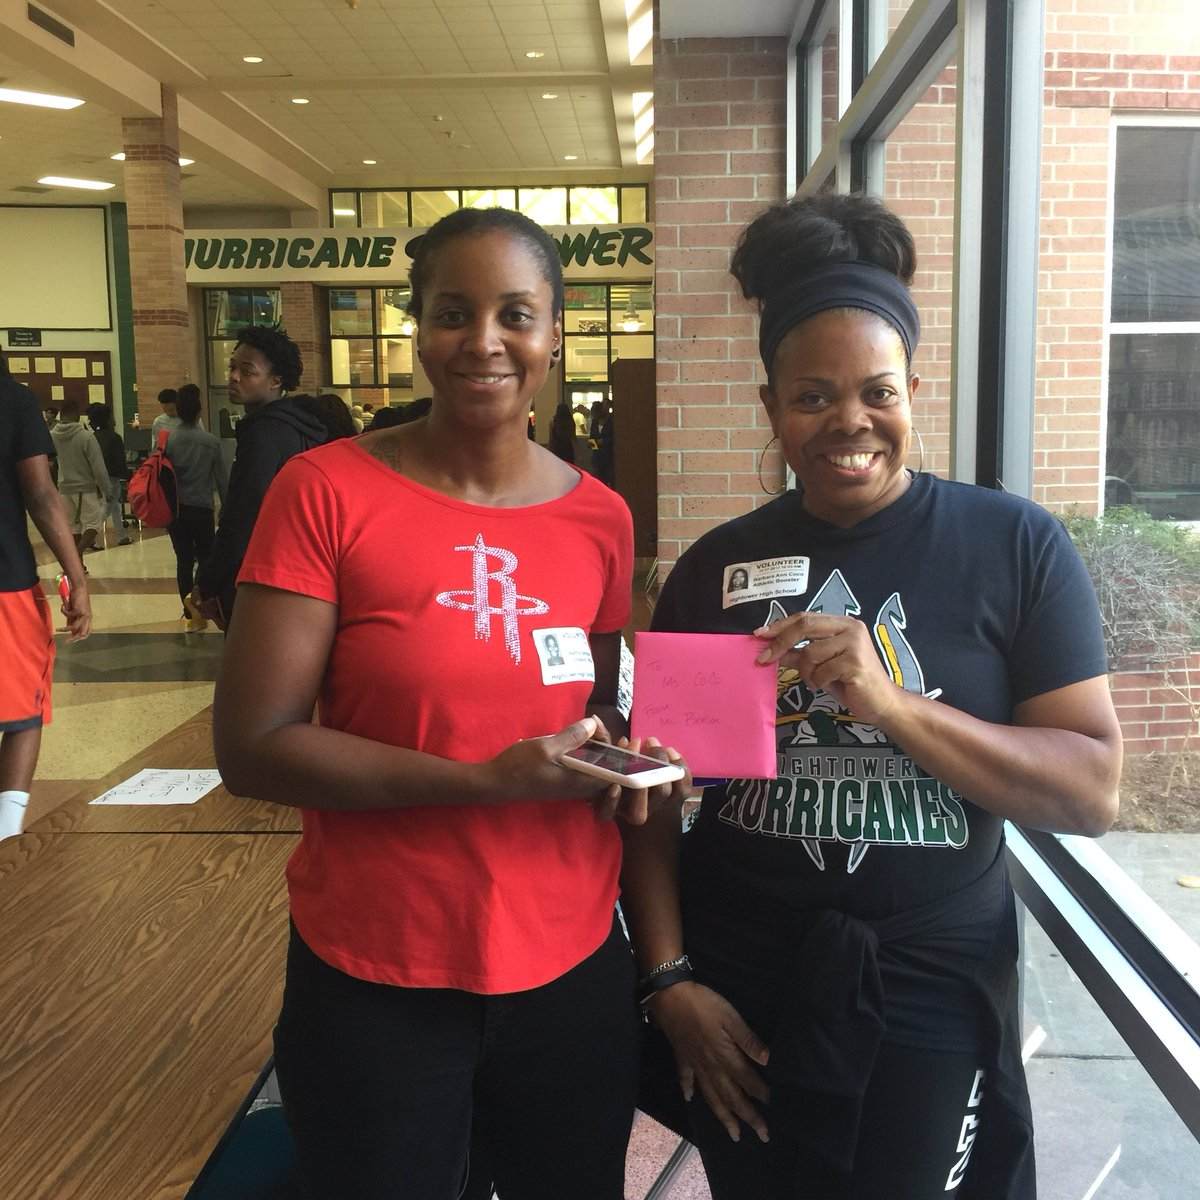 #latepost Congratulations to ME @BarbaraBebe2011 for being @HHS_Canes Volunteer of the Month! Thank you  @HHS_ProGrad2018 @montelongo_john<br>http://pic.twitter.com/ZDfZi3fZ50